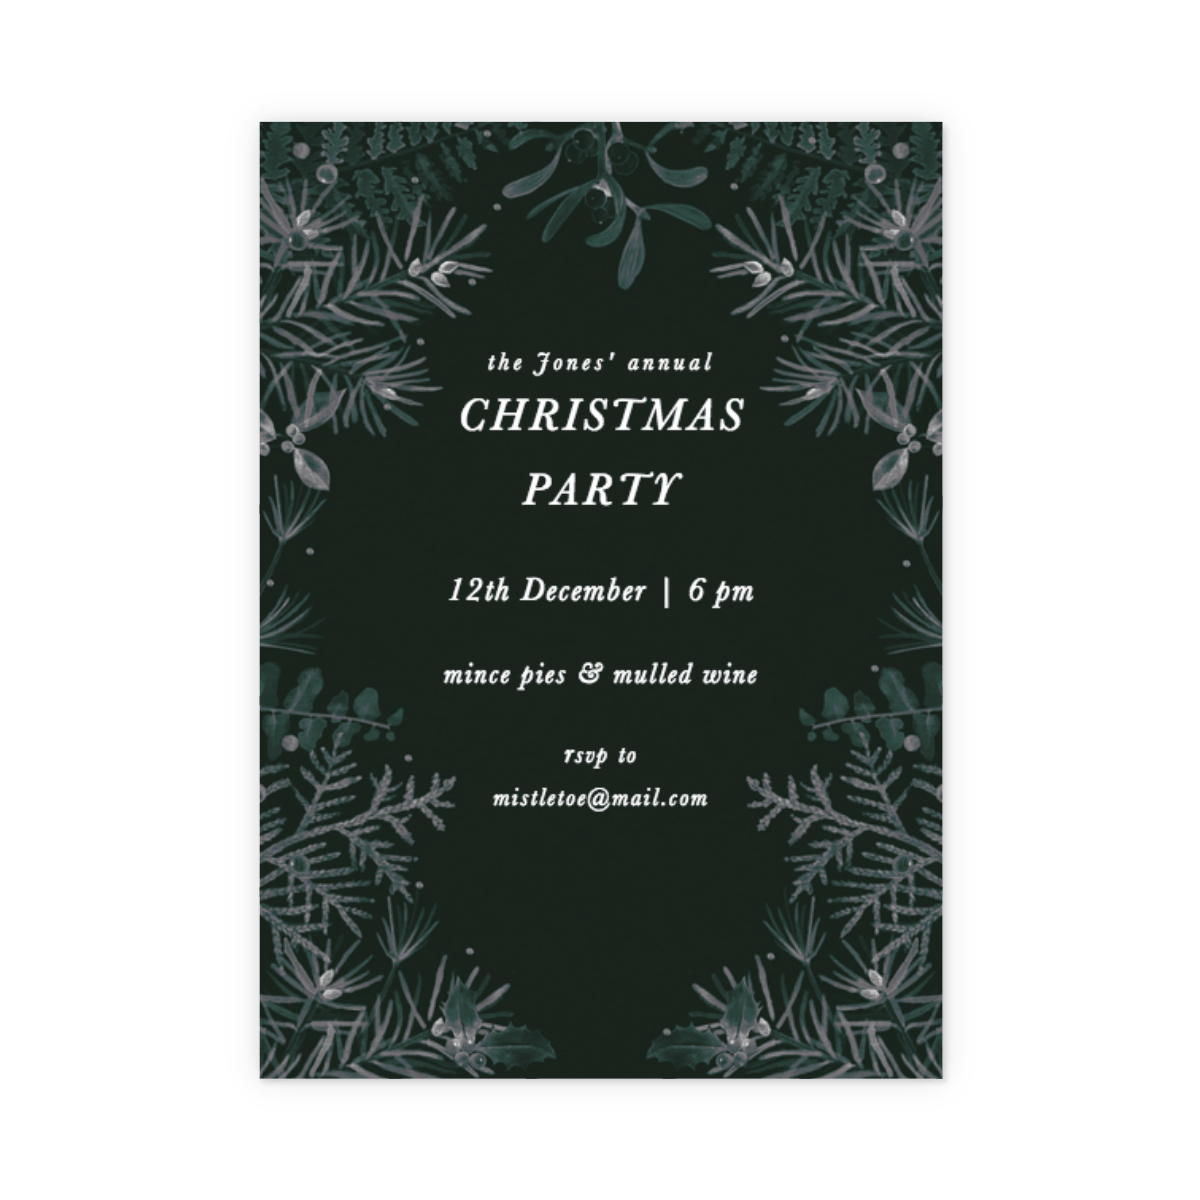 Https%3a%2f%2fwww.papier.com%2fproduct image%2f2380%2f4%2fchristmas greenery 659 front 1453910278.png?ixlib=rb 1.1